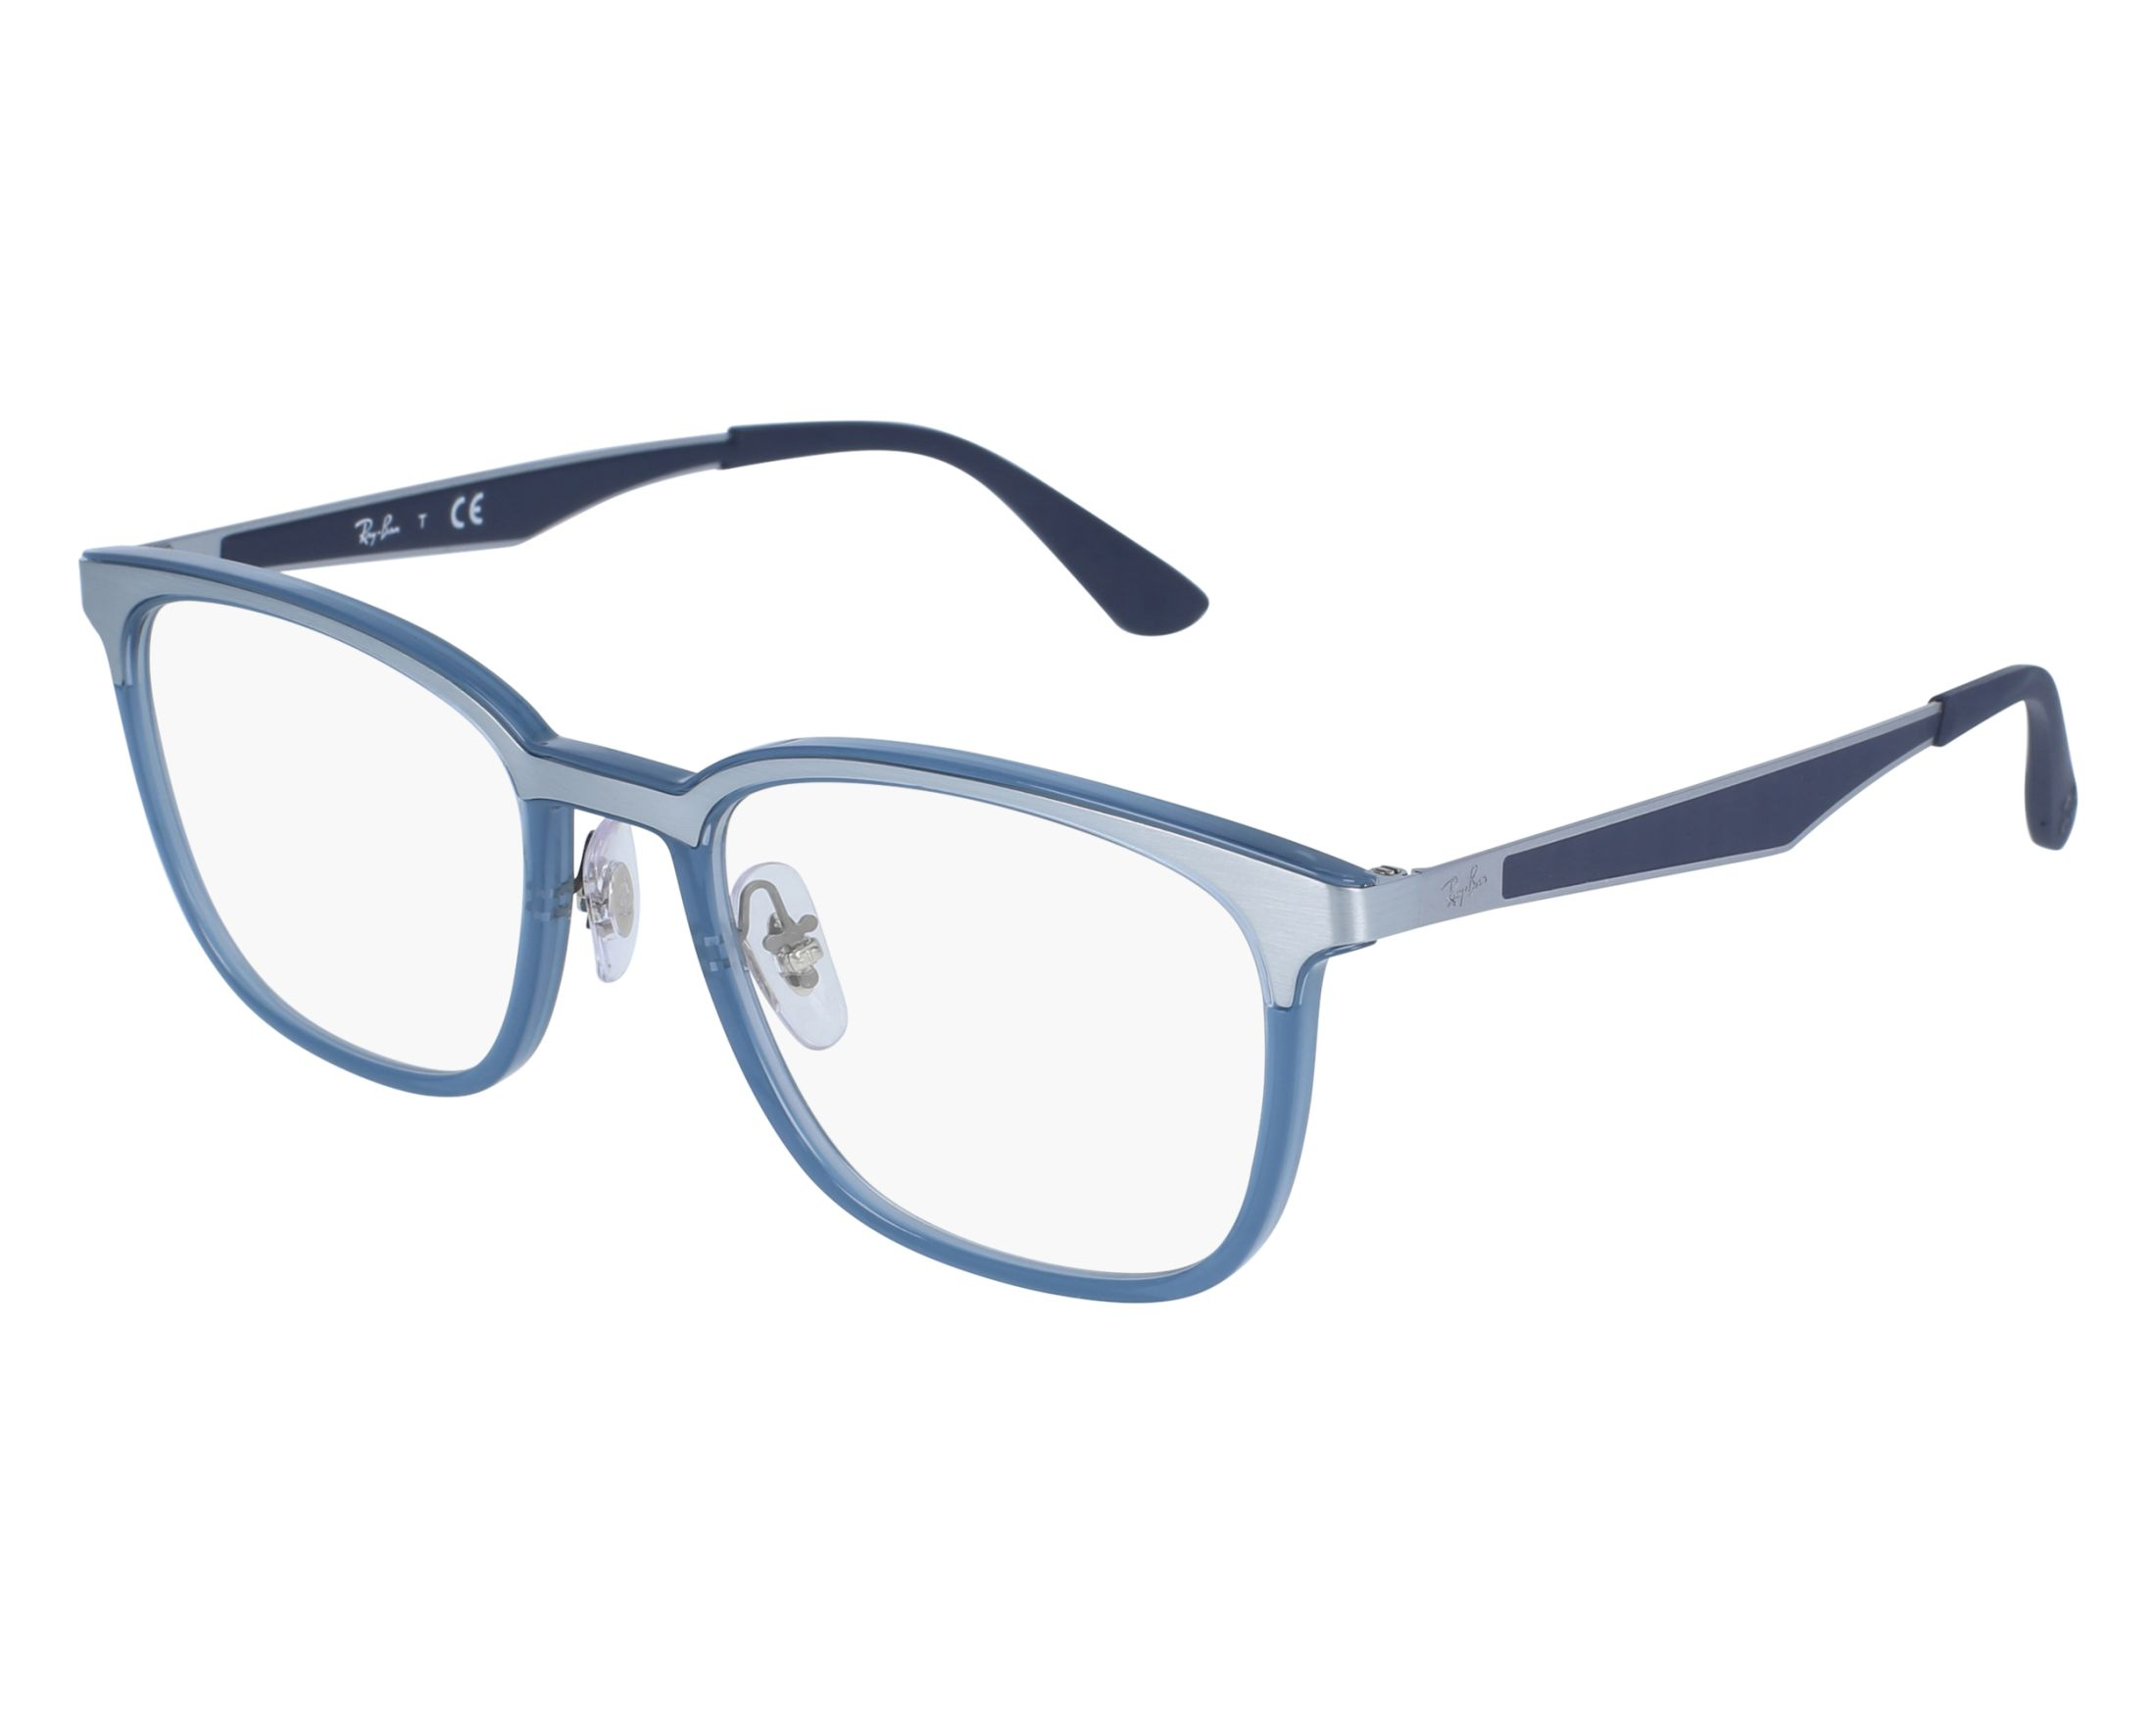 d4cd604df68a0 eyeglasses Ray-Ban RX-7117 8019 - Silver Blue front view